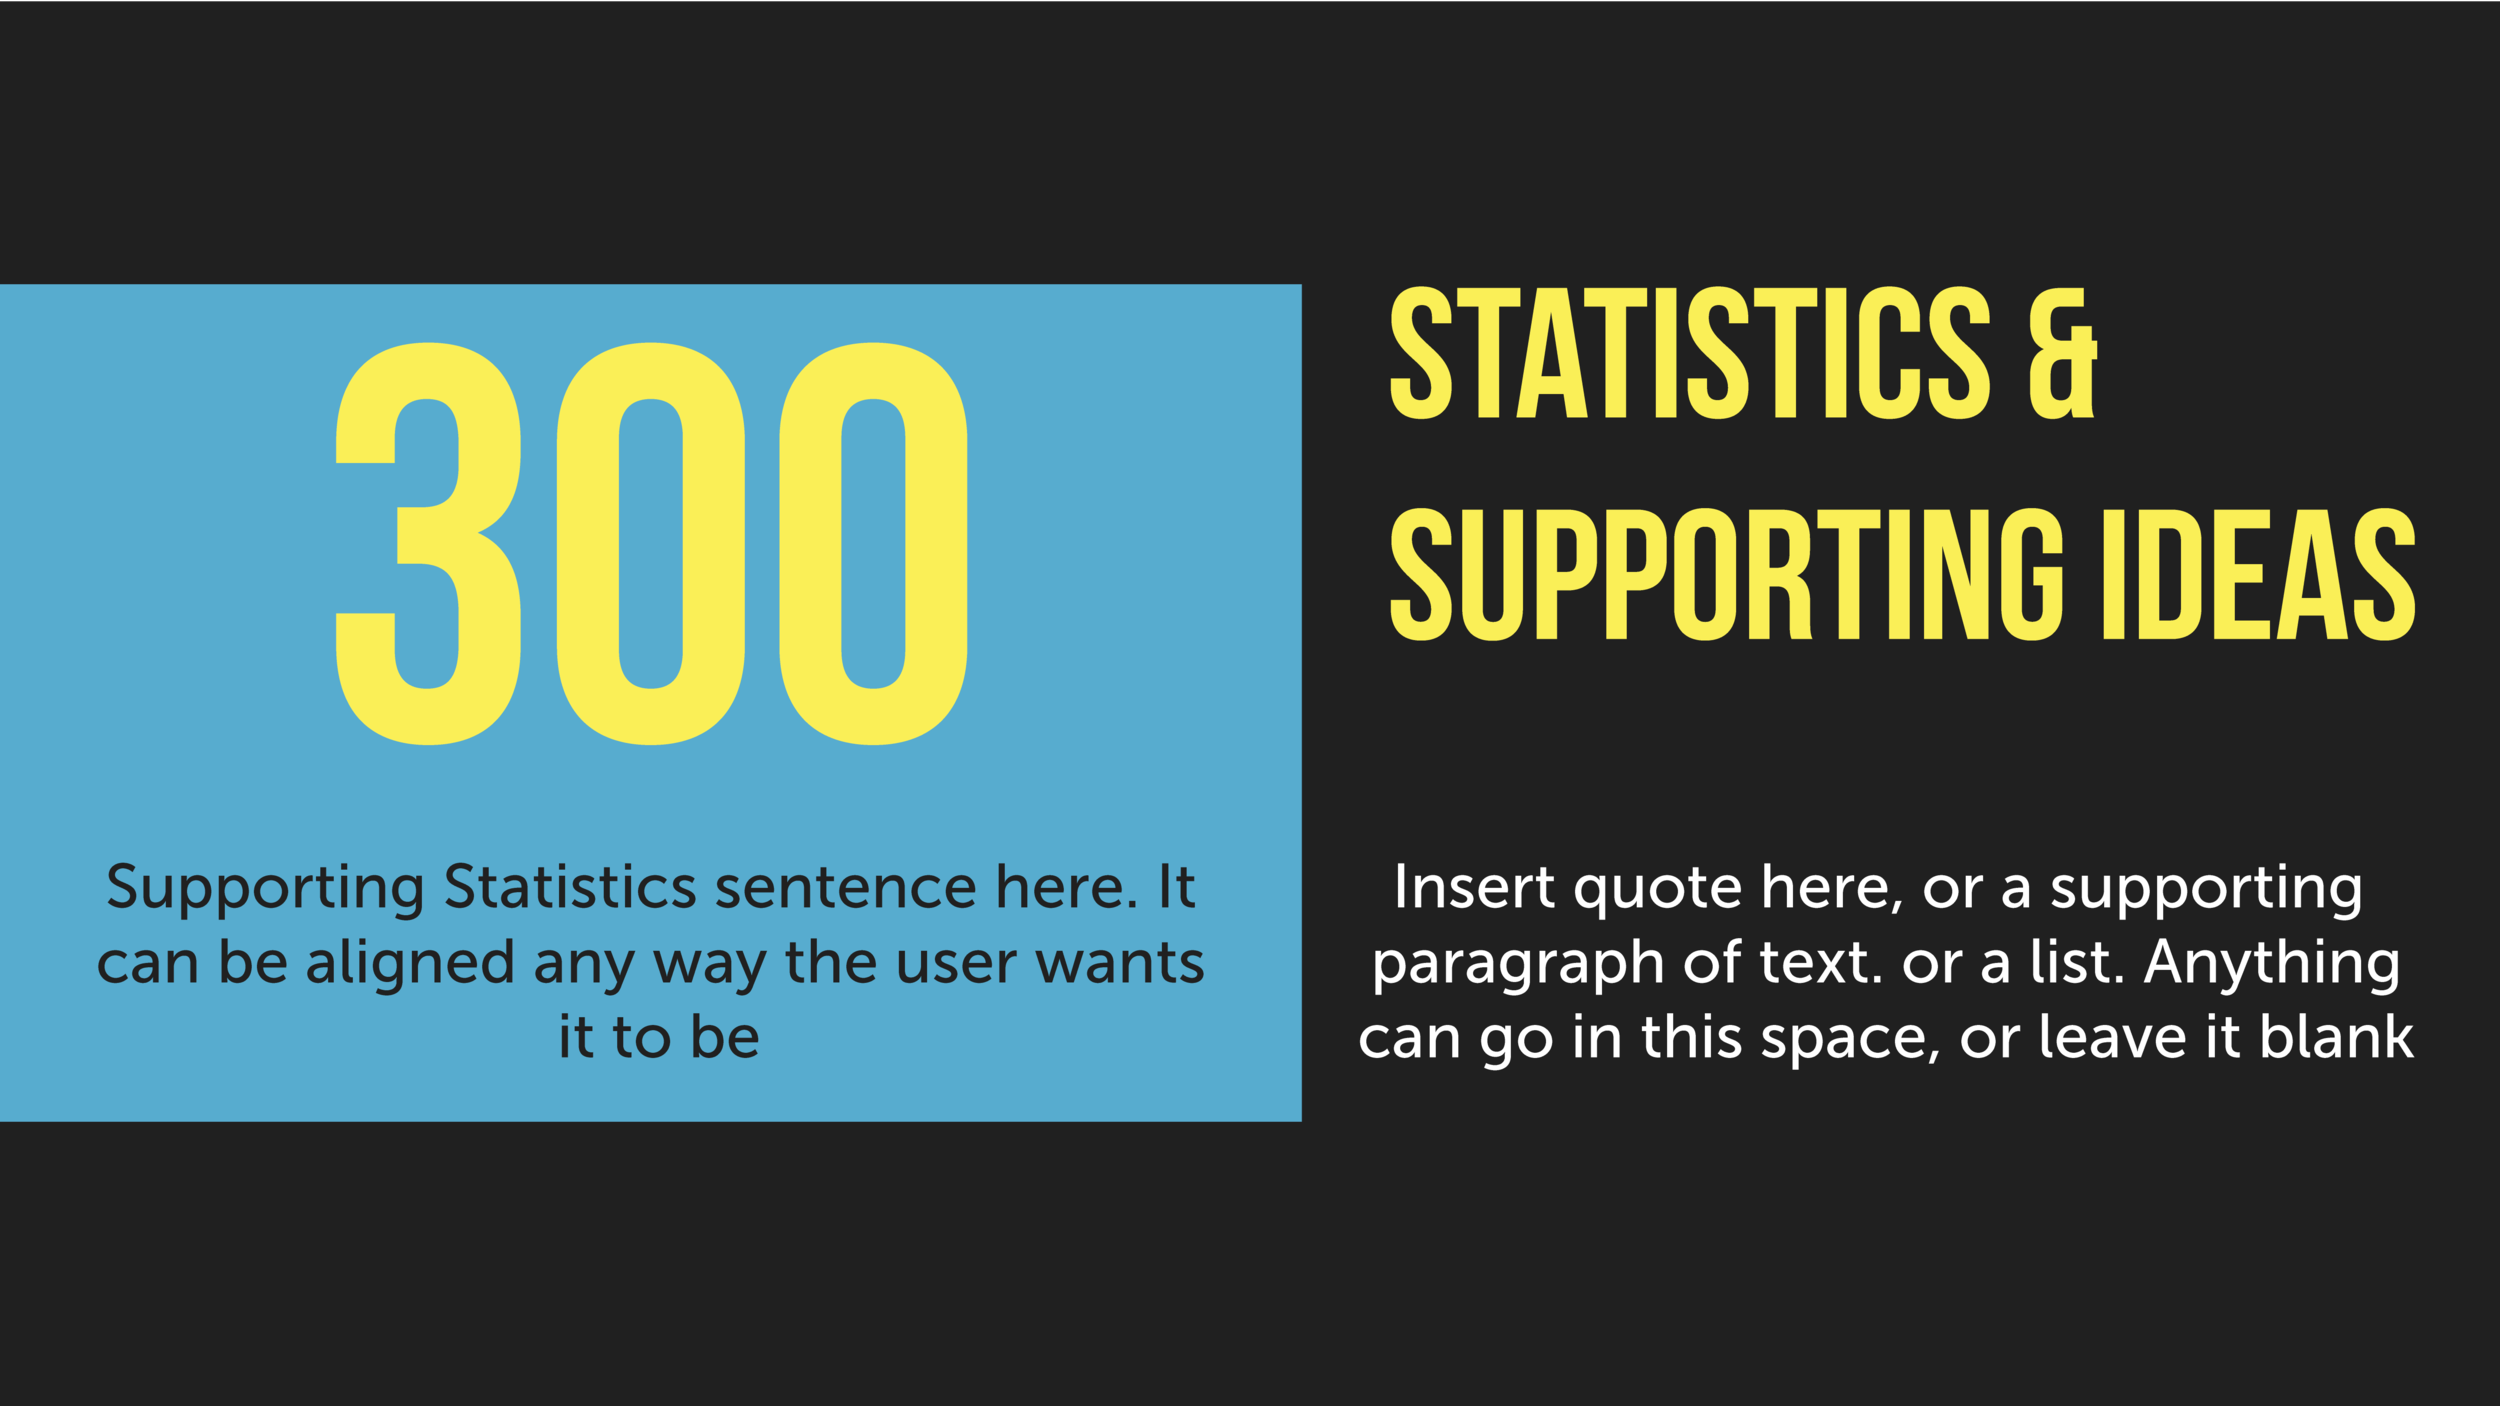 Statistics & Supporting Ideas.png